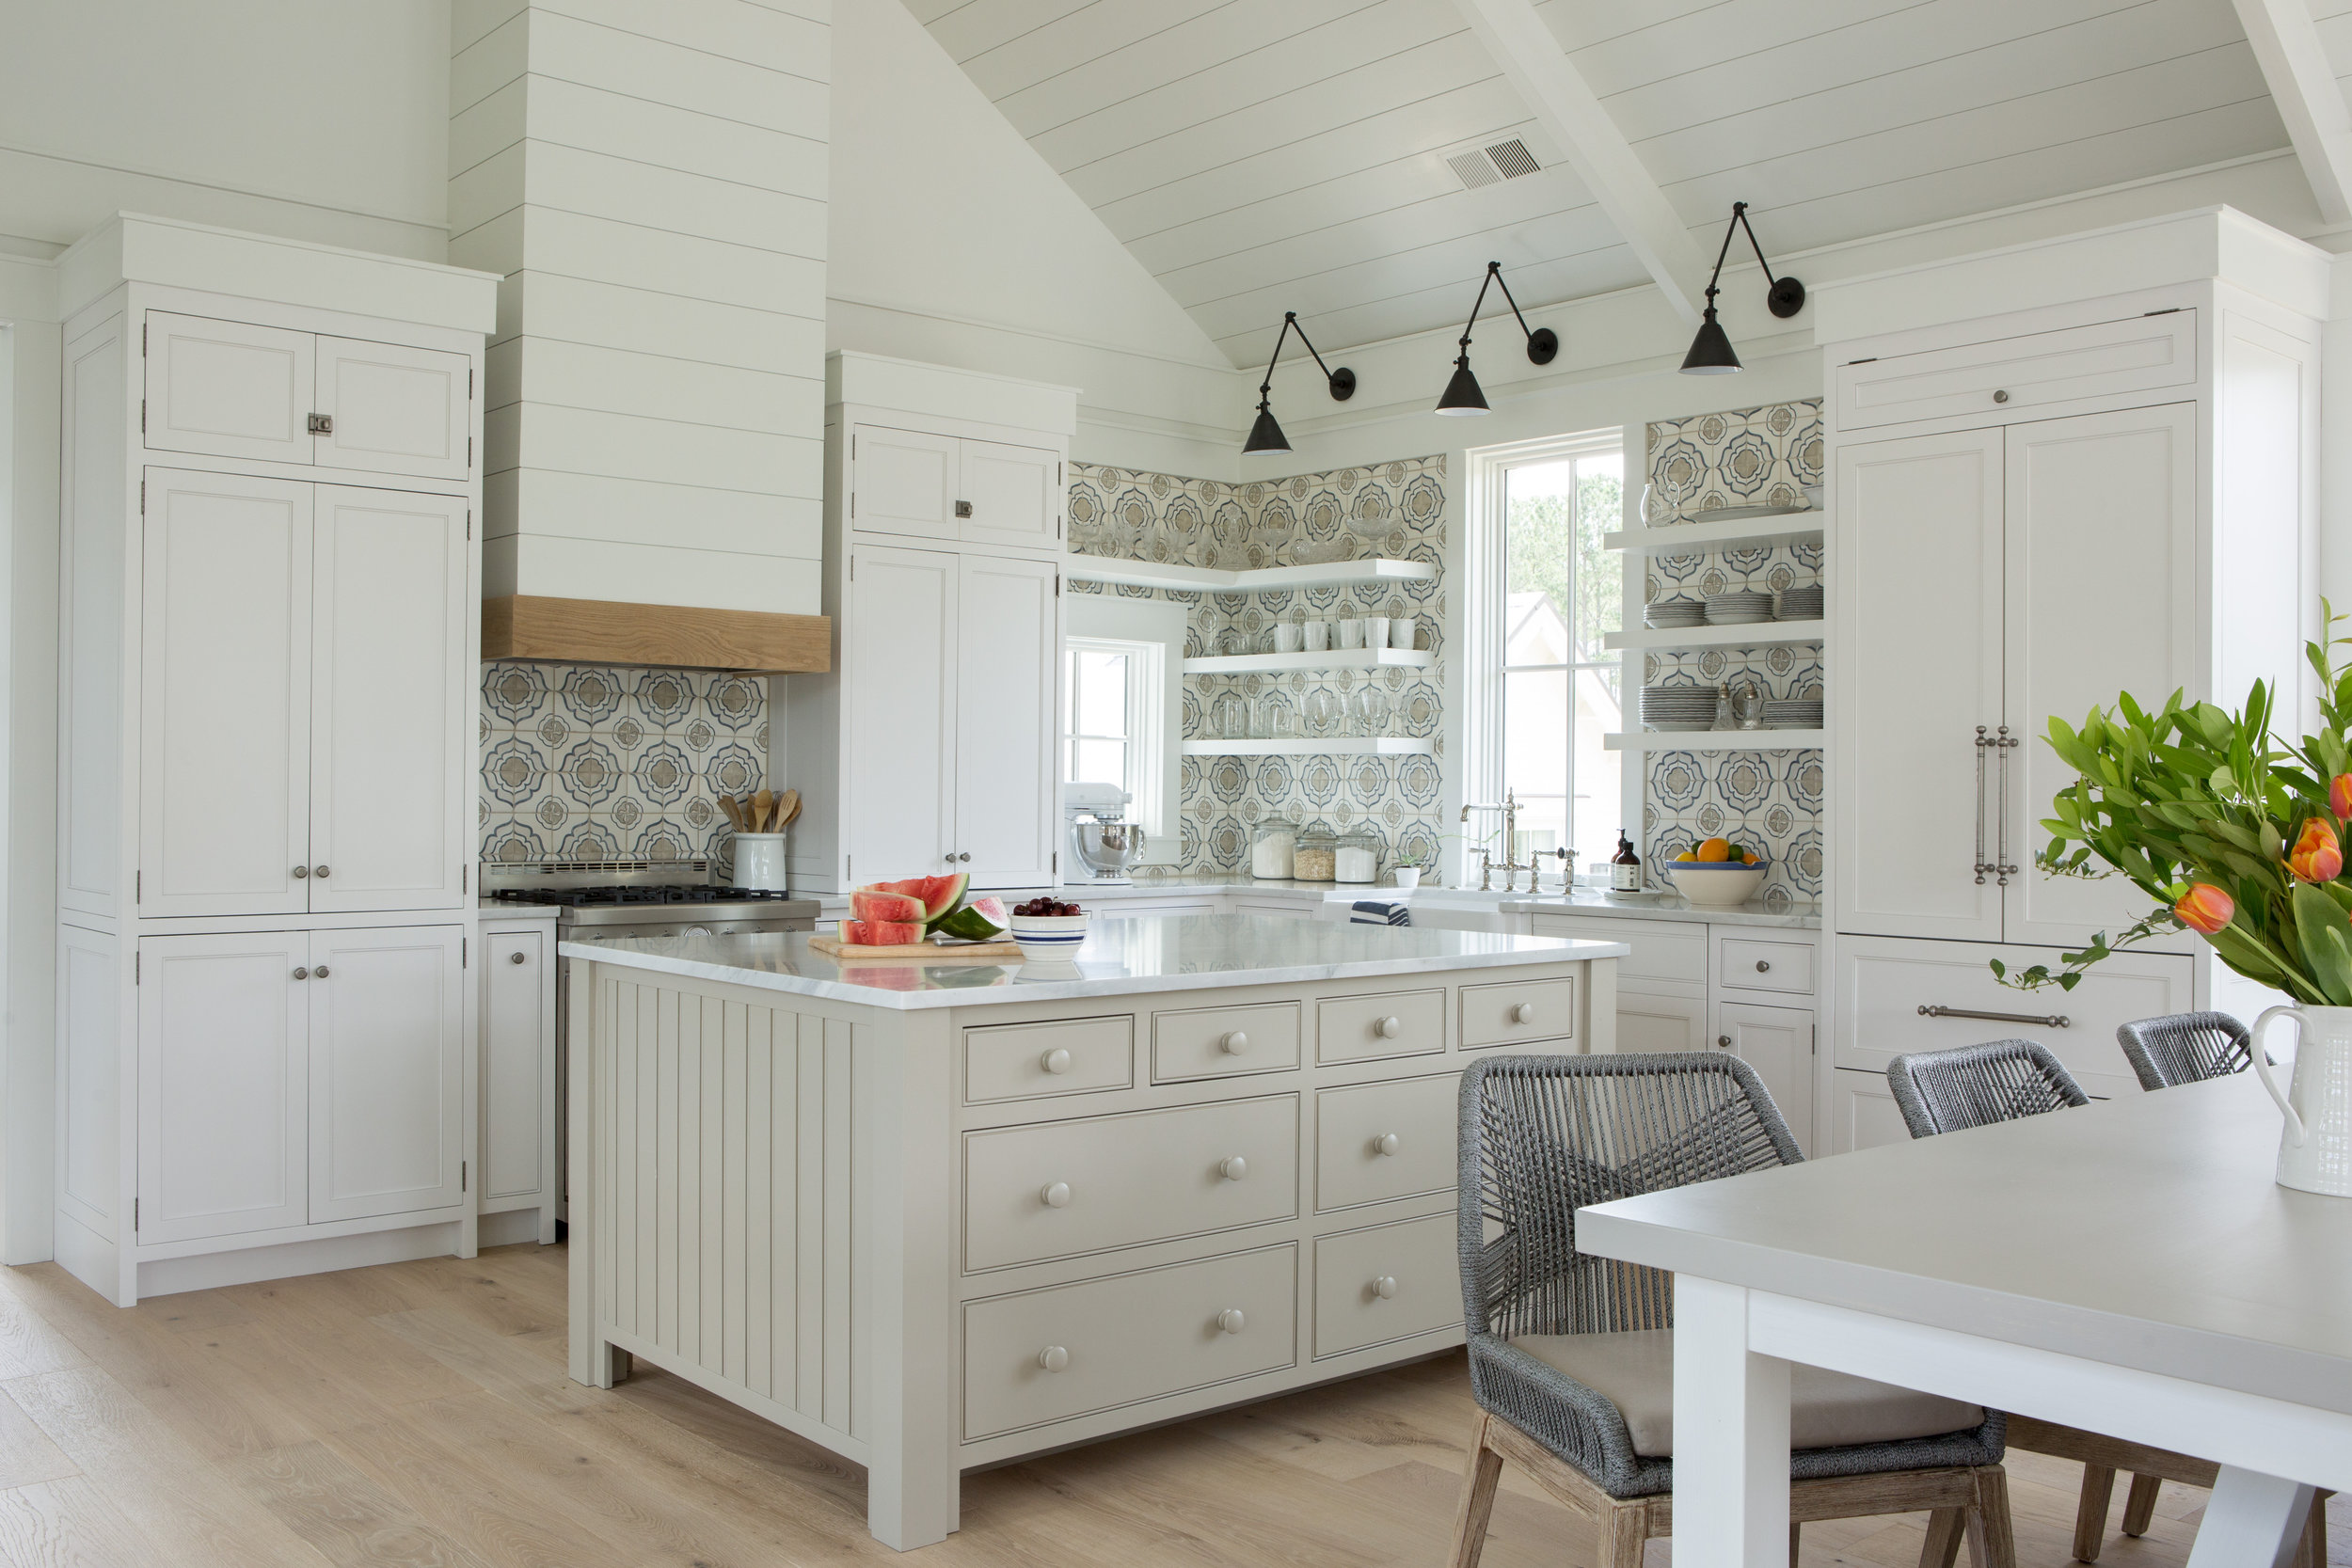 Modern farmhouse kitchen with coastal style and shiplap walls. Coastal Cottage Interior Design Inspiration - Part 1 {Get the Look!} #kitchendesign #modernfarmhouse #shiplap #coastaldecor